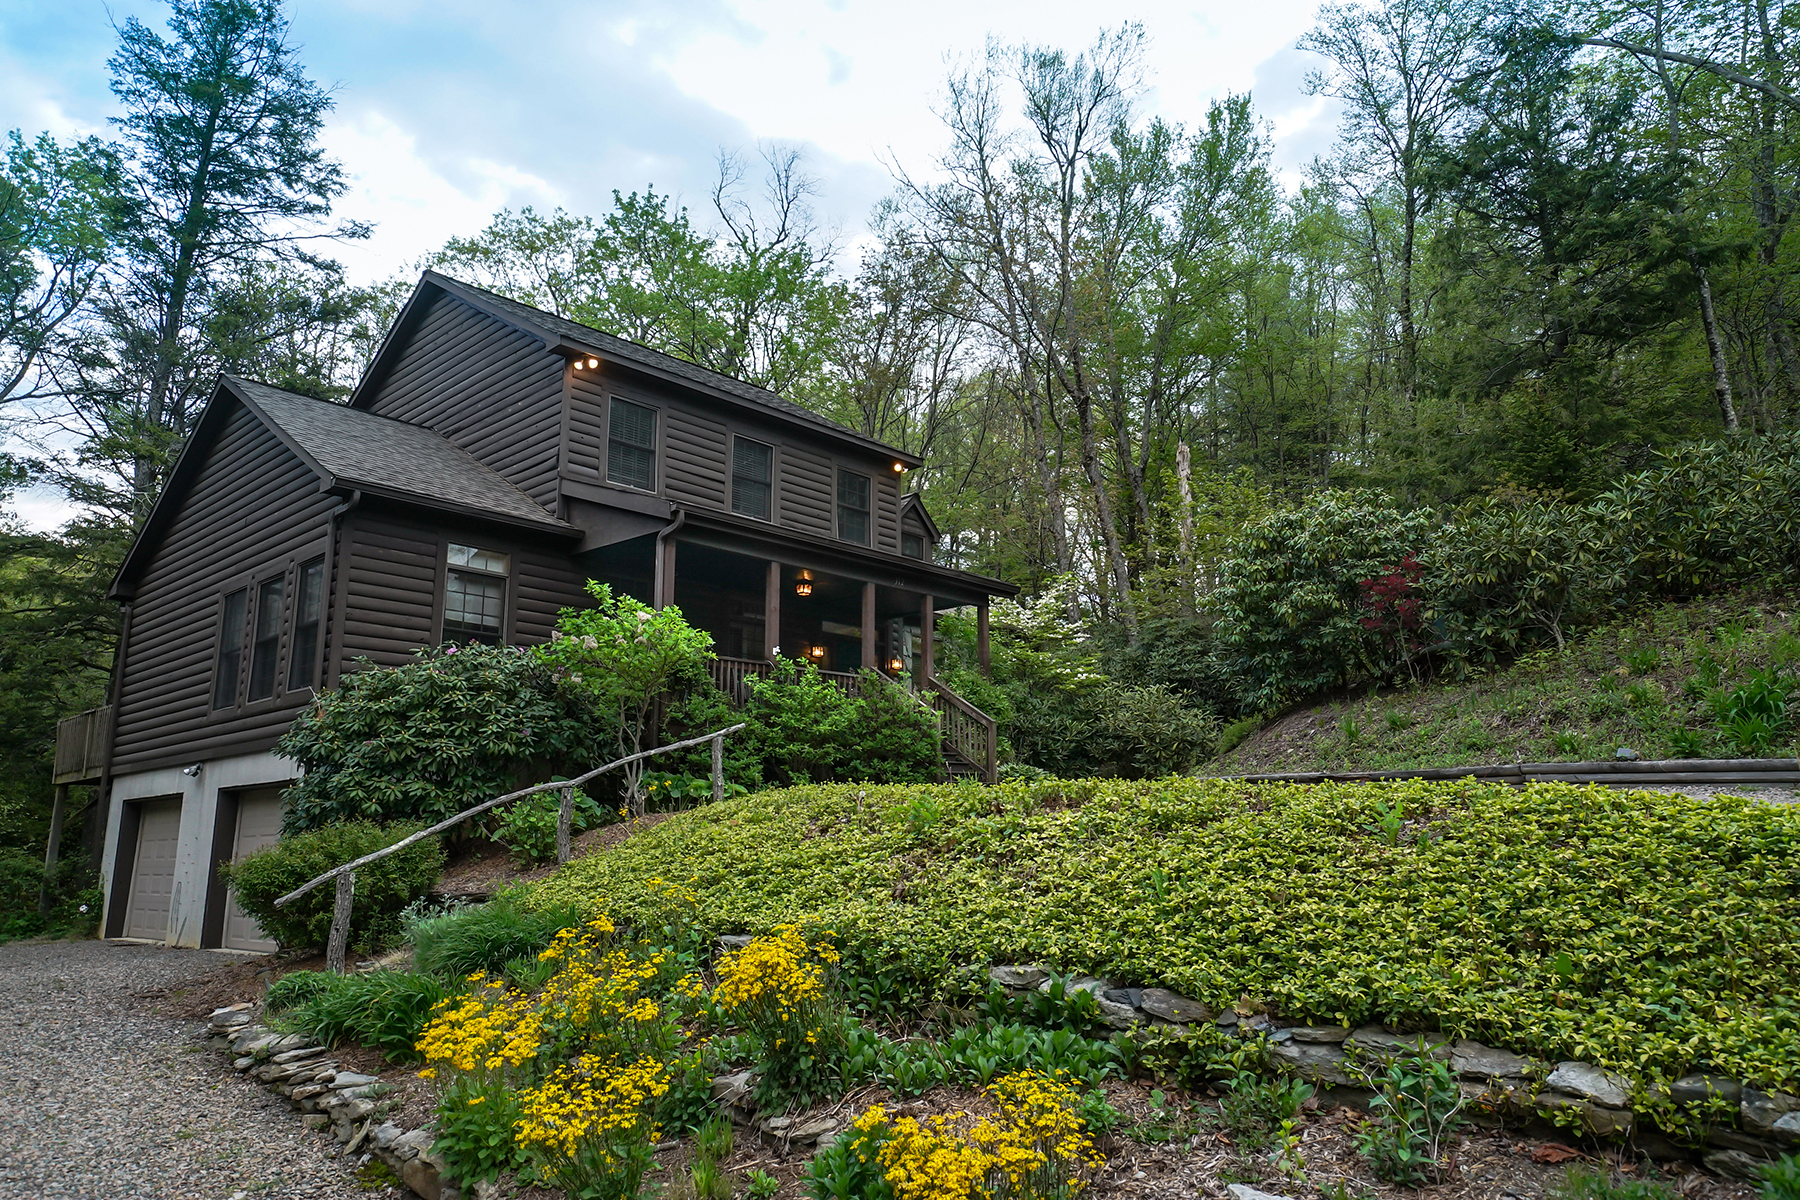 Single Family Home for Sale at BLOWING ROCK 312 Heritage Ln, Blowing Rock, North Carolina 28605 United States